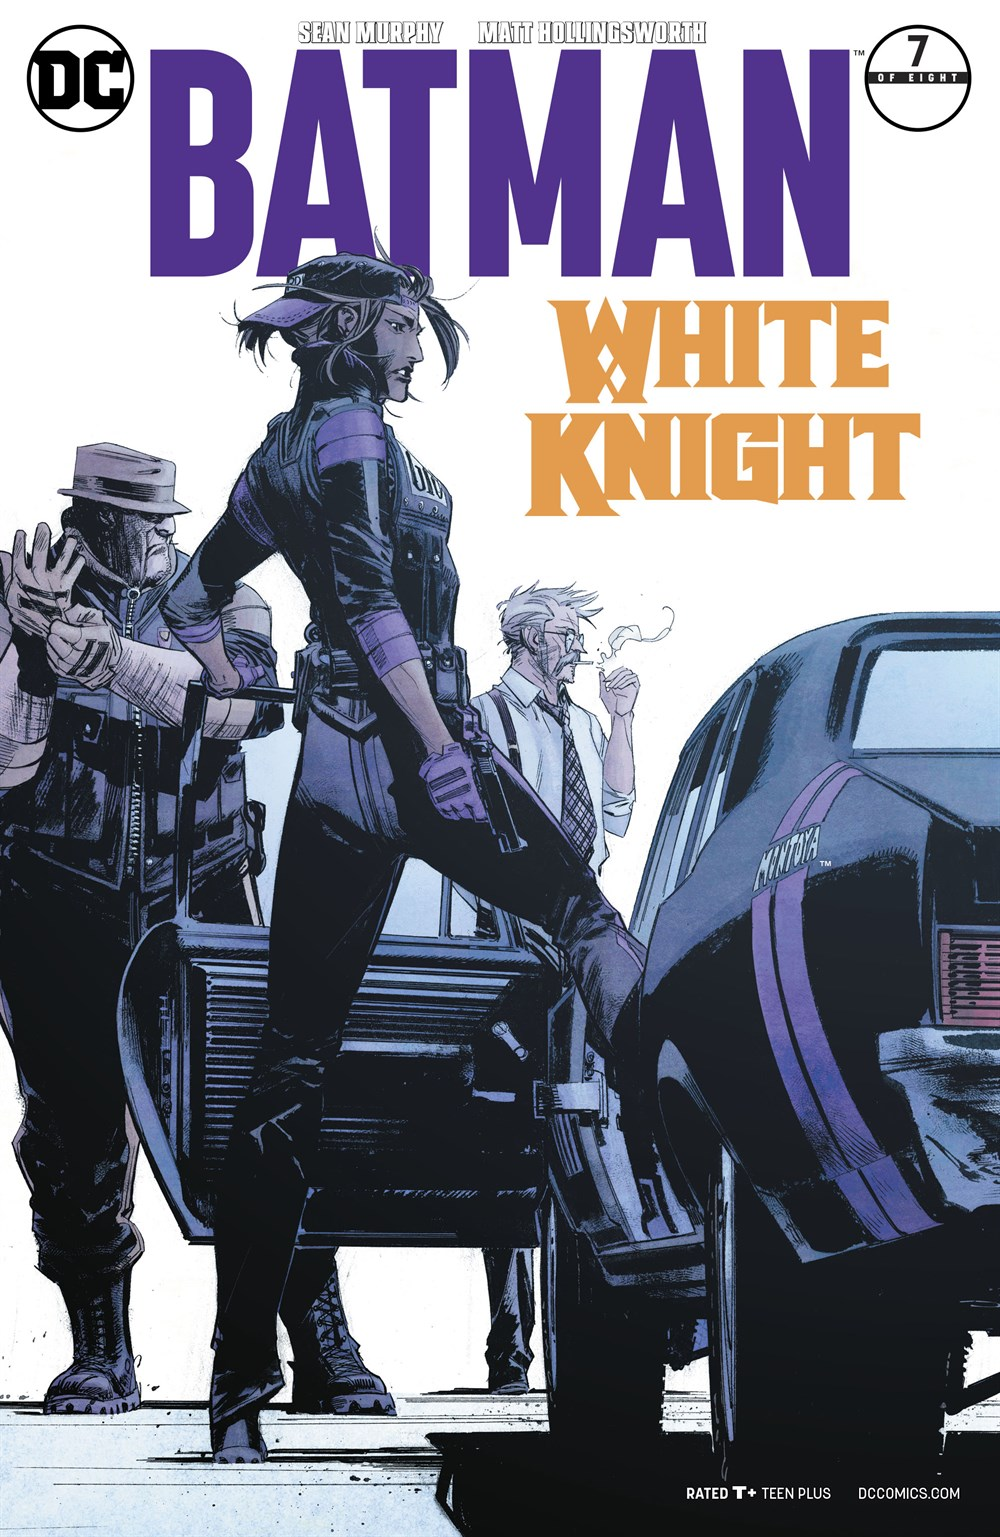 BATMAN WHITE KNIGHT #7 VARIANT